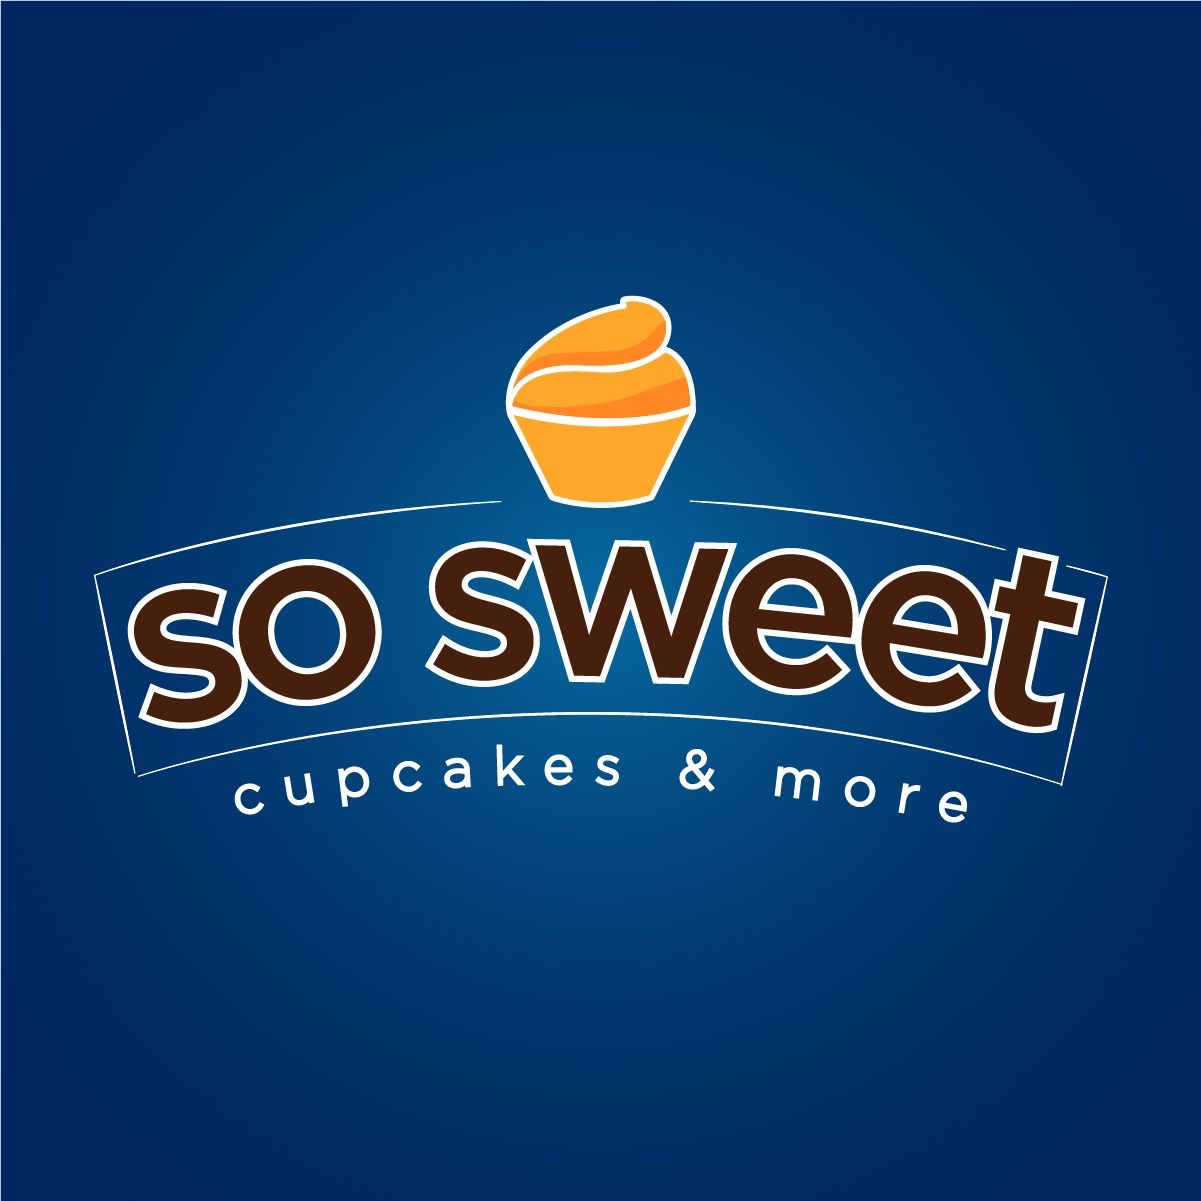 So Sweet Cupcakes & More